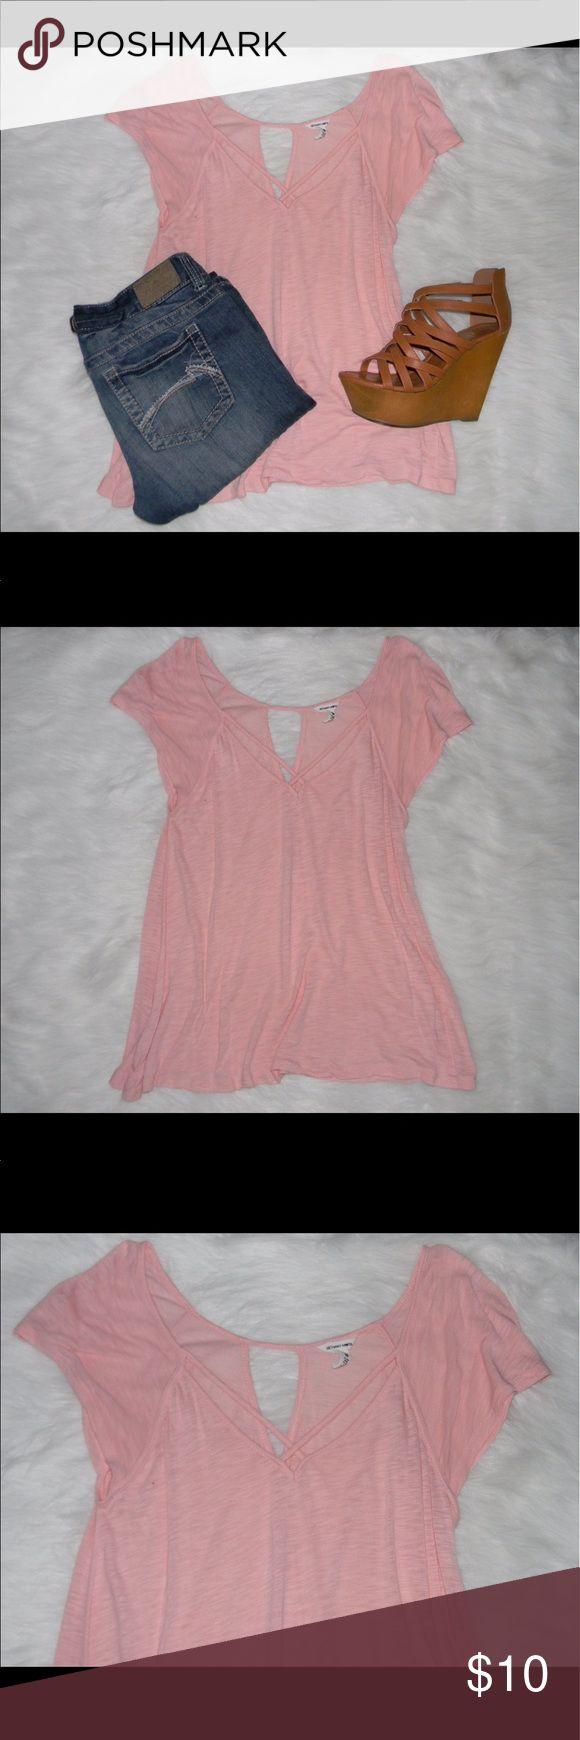 "Pink Strappy Top (462) Size medium, very good condition, 80% rayon 20% cotton, 17"" bust, 26"" long -Packages are shipped from California -Sorry but NO TRADES -Items in cover are meant for decorative purposes -Everything is cross-posted -Sorry No Holds -Comes from smoke free, dog friendly homes -Bundle for discounts -Reasonable offers are accepted via the offer button -All measurements are from items laying flat Bethany Mota Tops Tees - Short Sleeve"